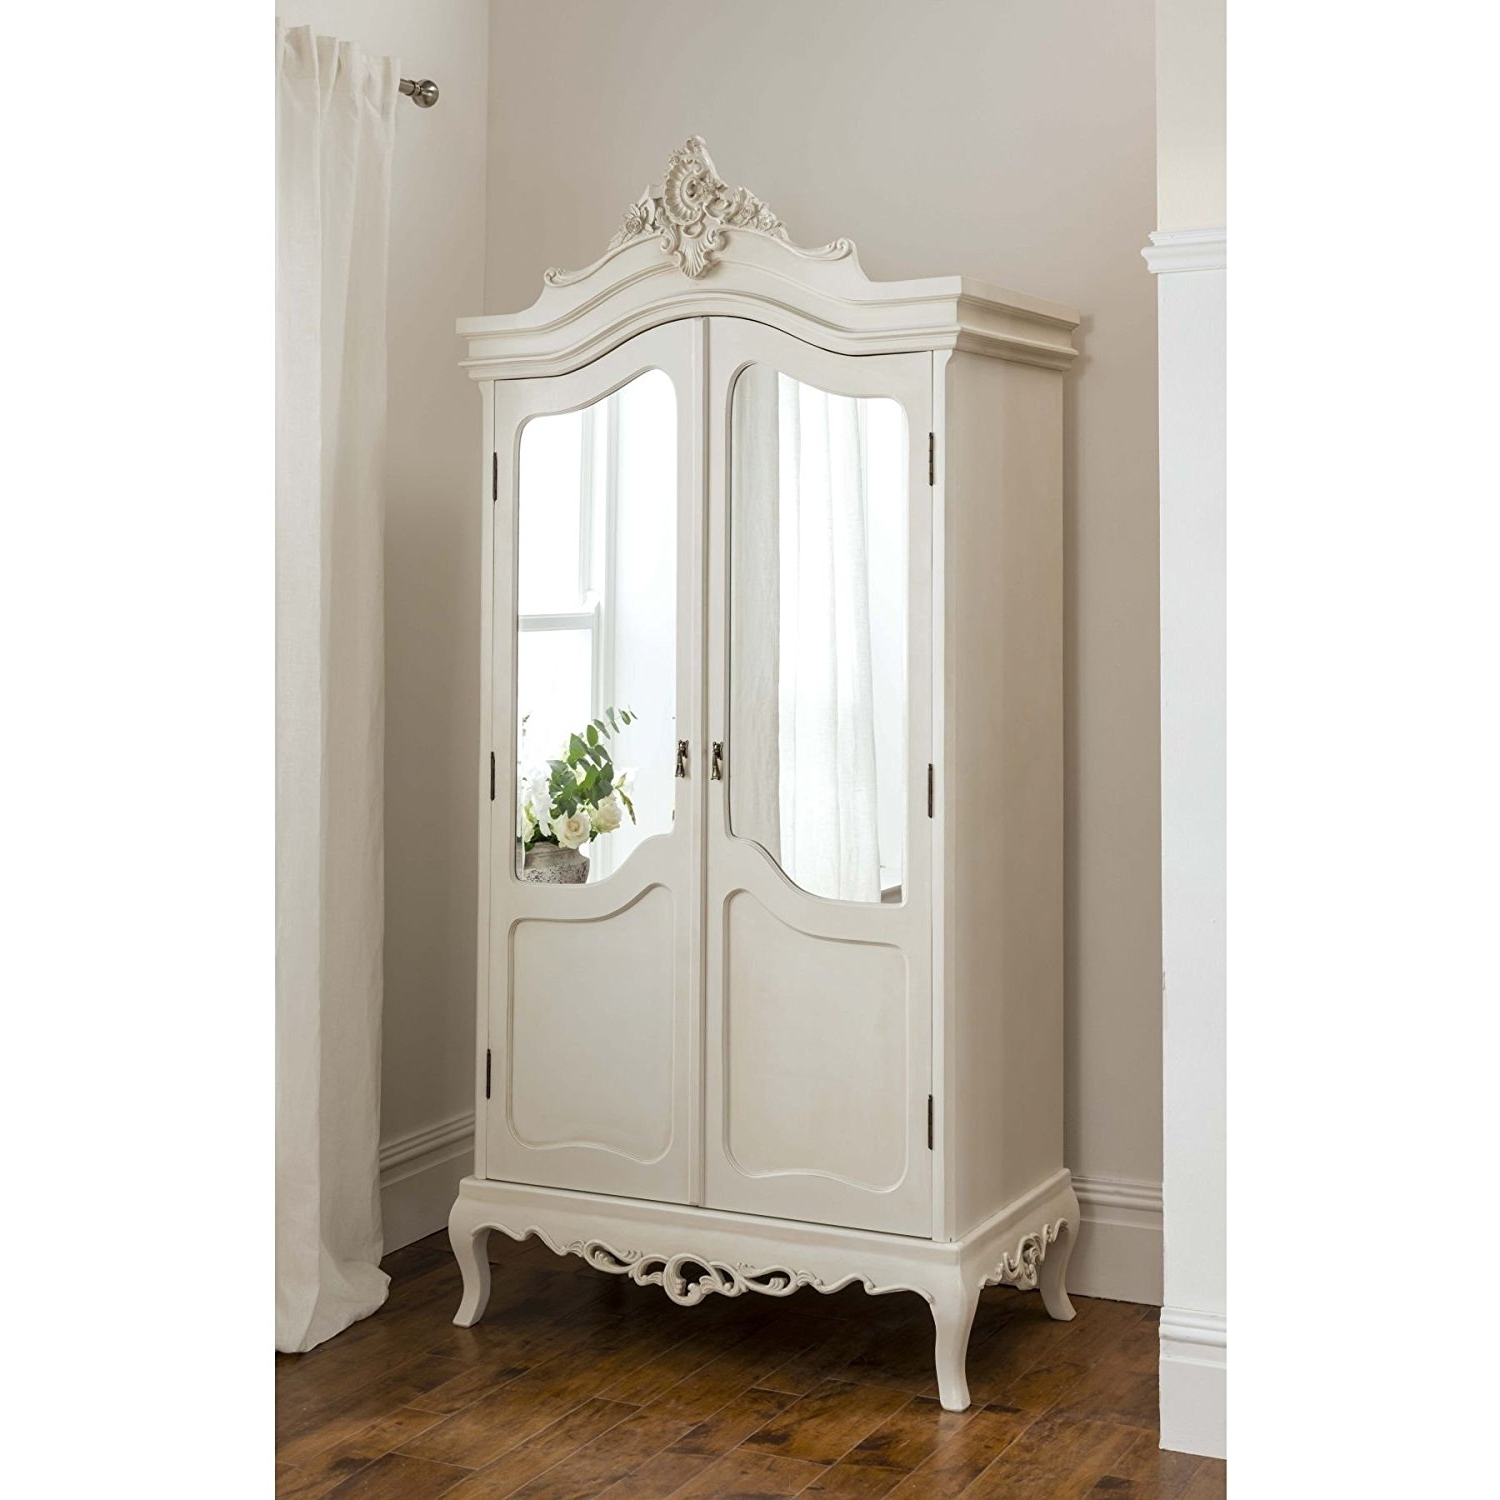 Most Current Annaelle Antique French Wardrobe: Amazon.co.uk: Kitchen & Home Within Armoire French Wardrobes (Gallery 6 of 15)